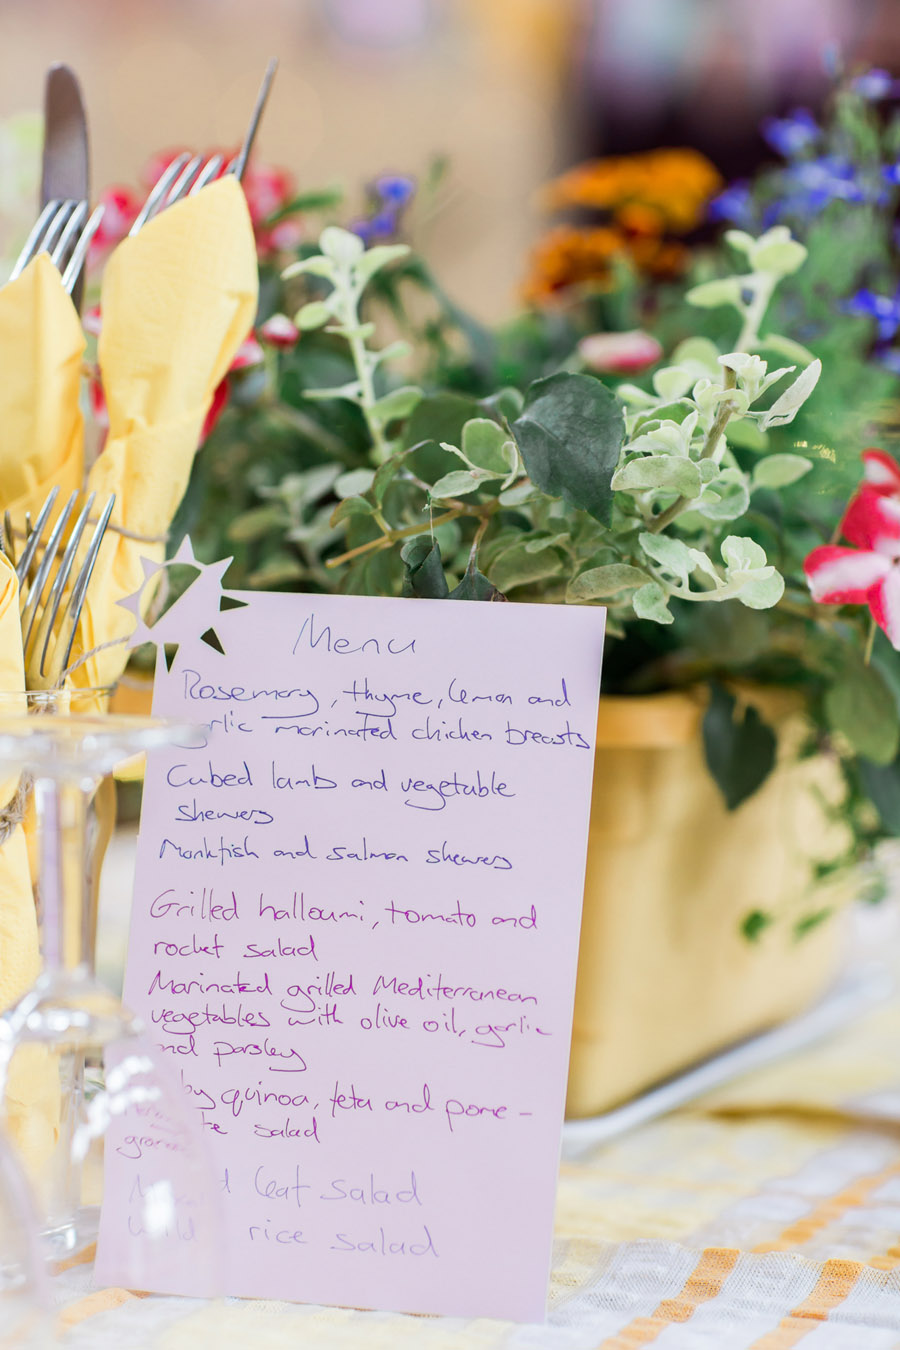 Hertford Castle intimate and alternative English wedding, photo credit Siobhan H Photography (36)